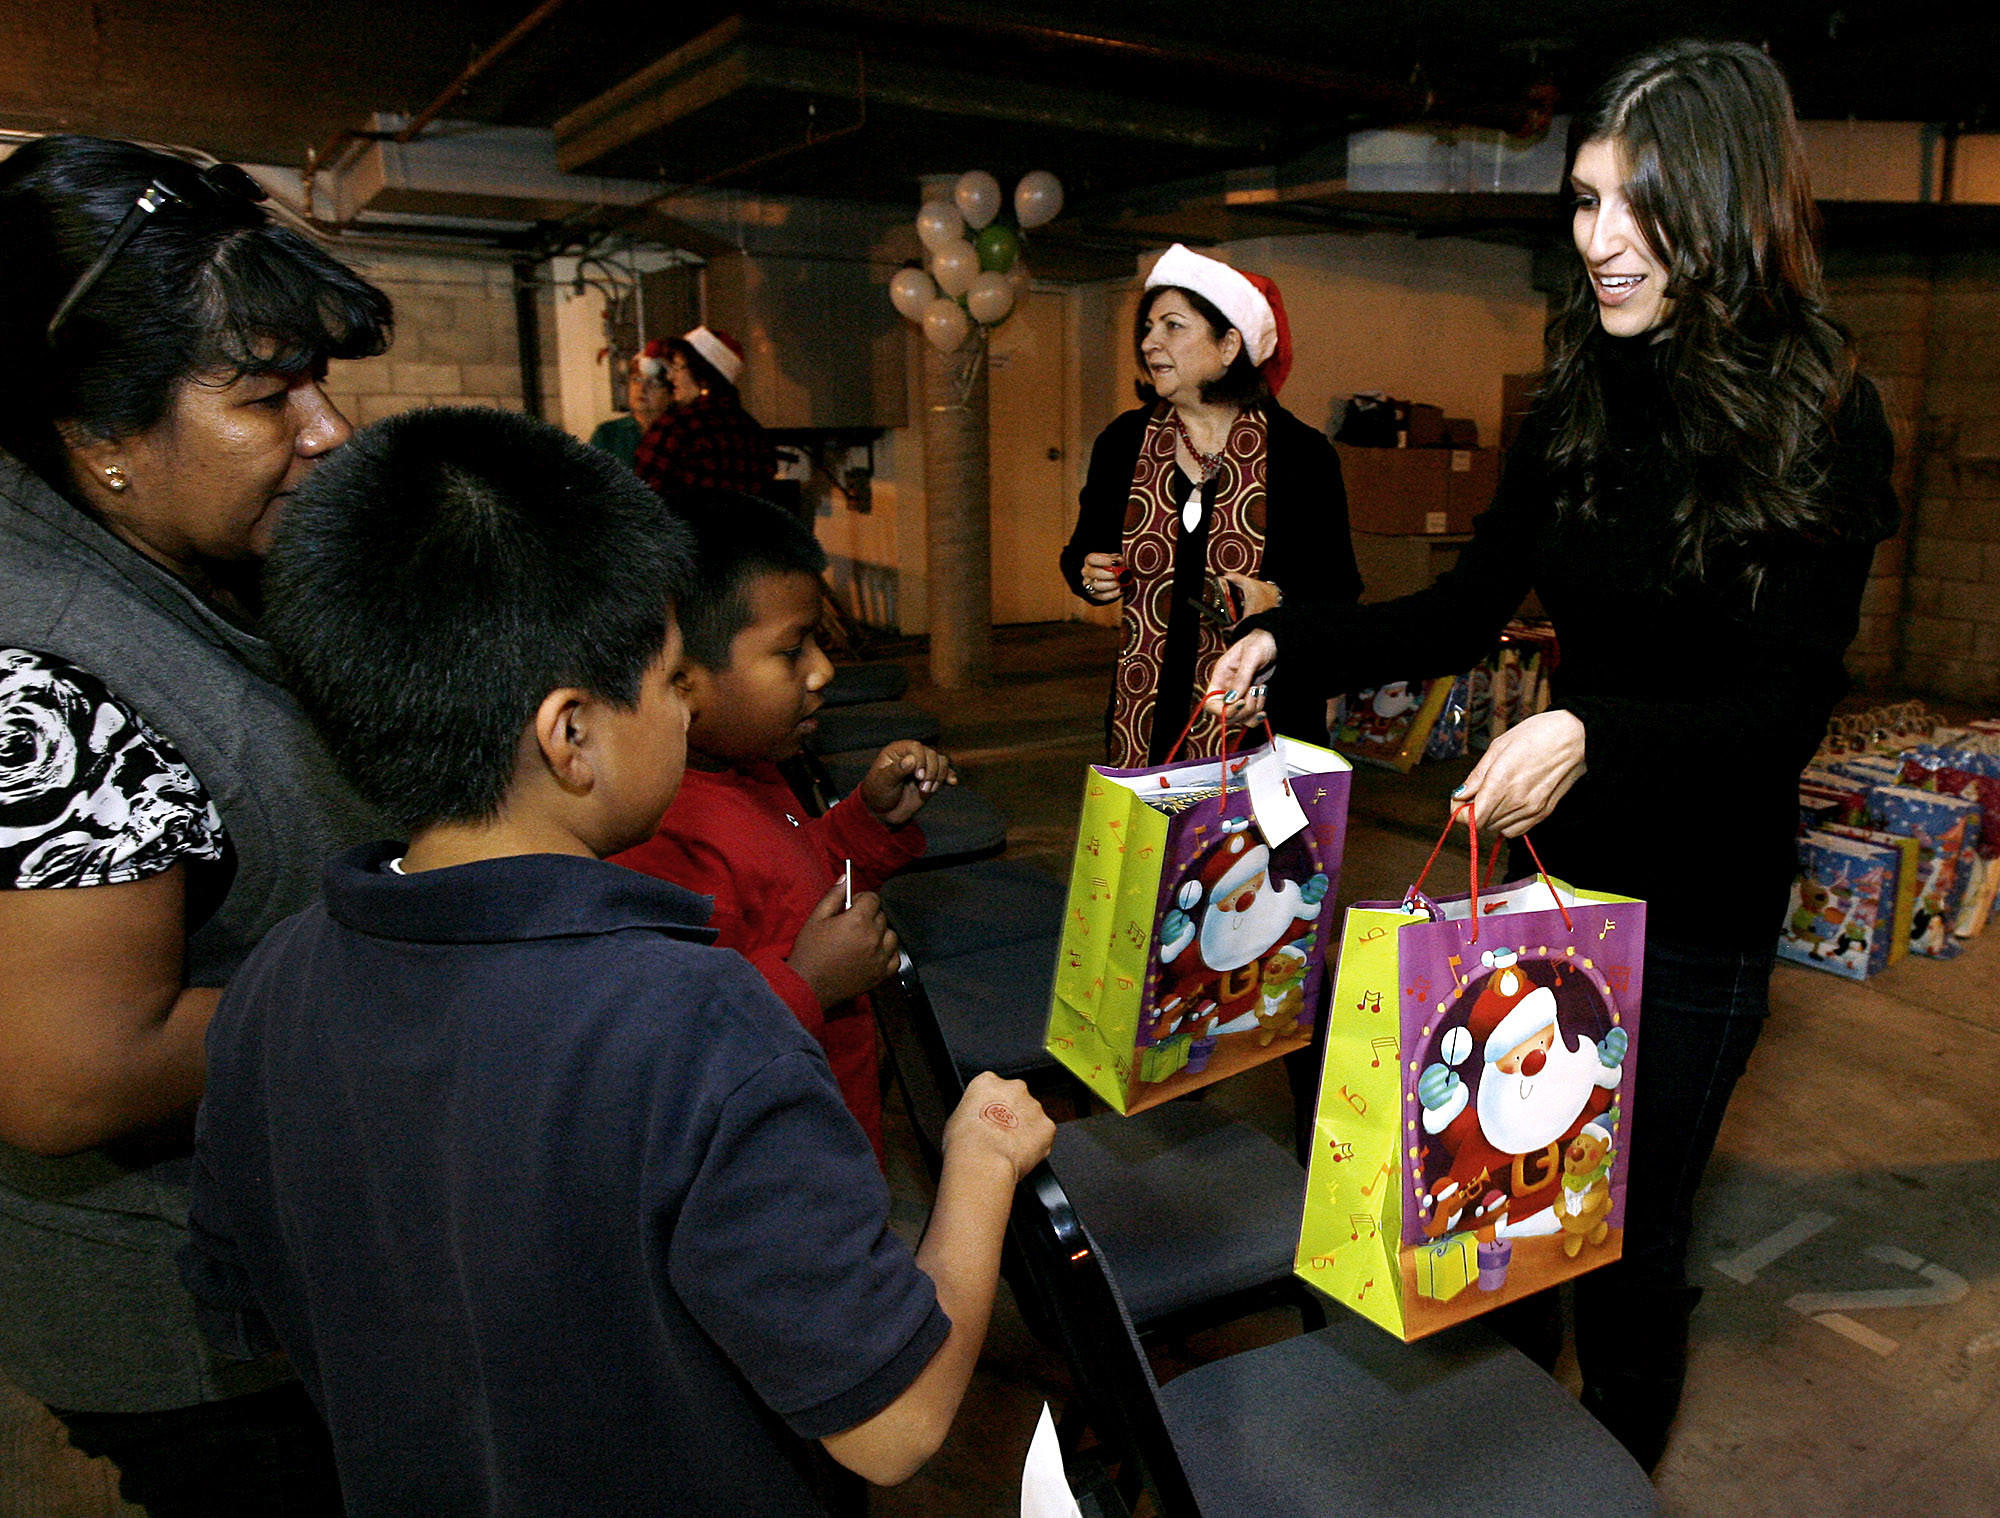 Armenian Relief Society of Western USA's Tallar Yahyayan, right, hands gifts to two local children during their annual Gift Giving Event at the company's headquarters in Glendale on December 19, 2012. Two thousand bags were expected to be given away to local children, regardless of need.The Armenian Relief Society of Western USA in Glendale, founded in 1984, is celebrating its 30th anniversary with three days of events, starting on Friday, May 2, 2014.